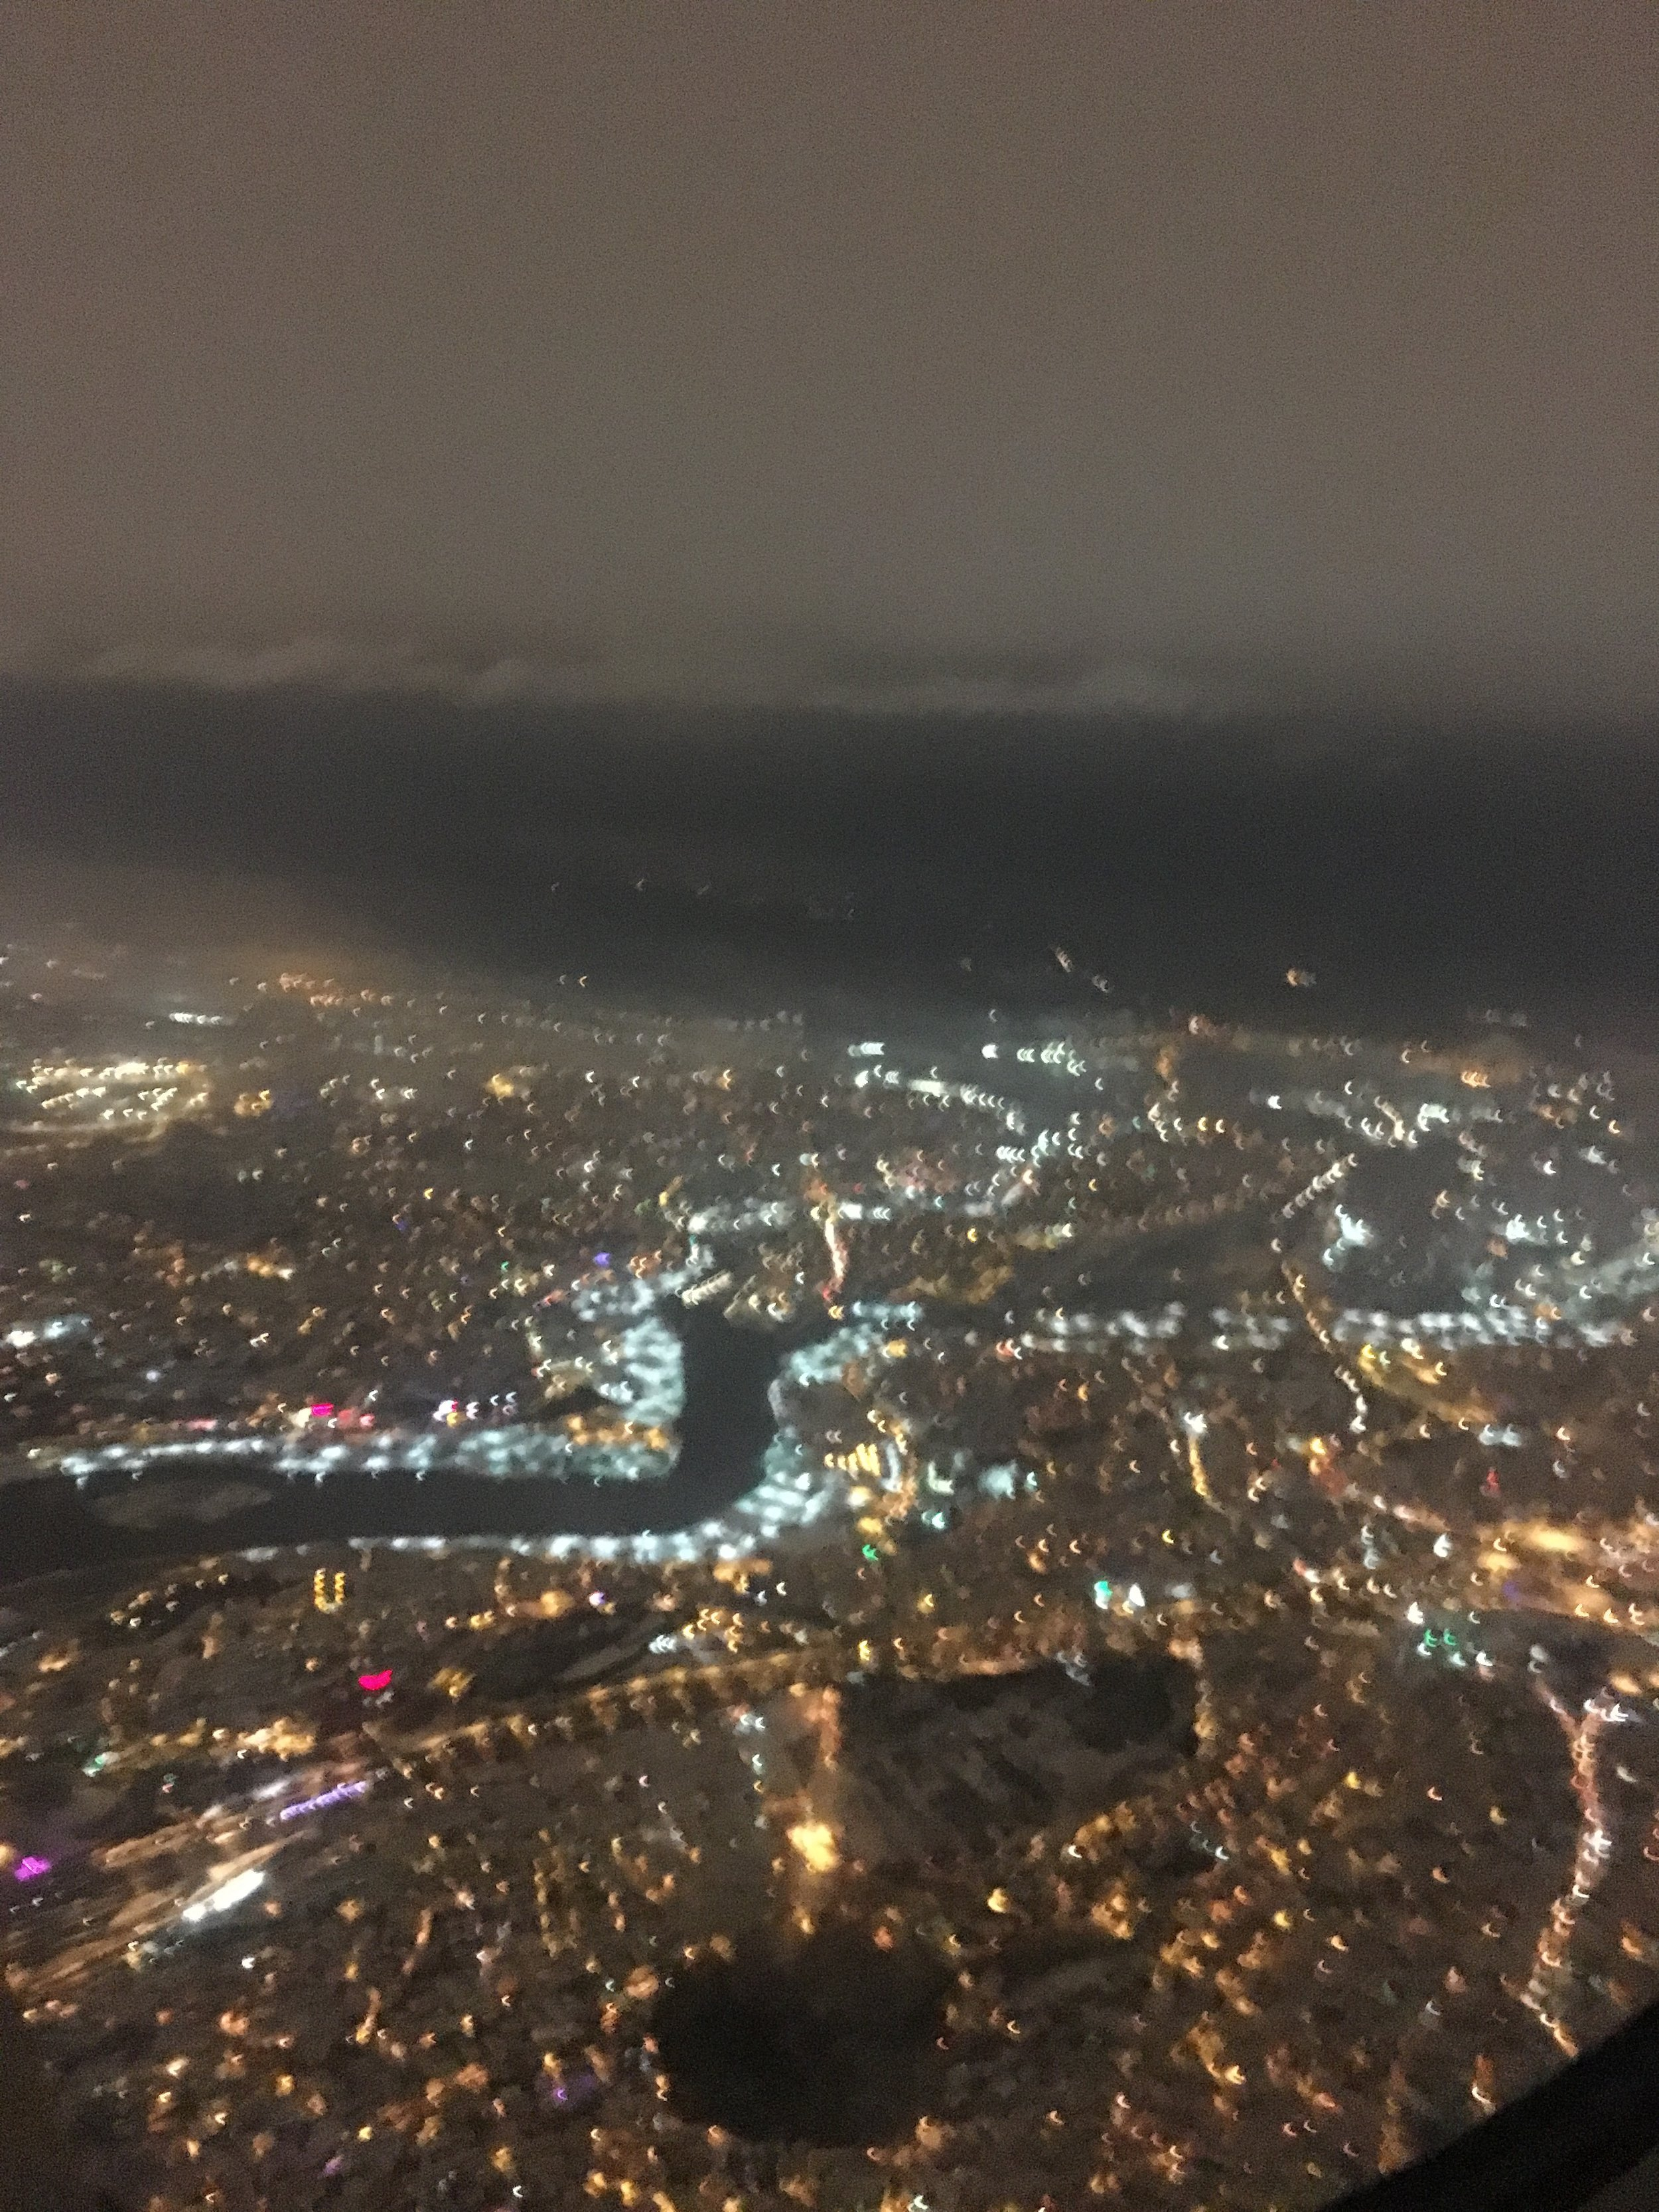 Blurry...but Istanbul